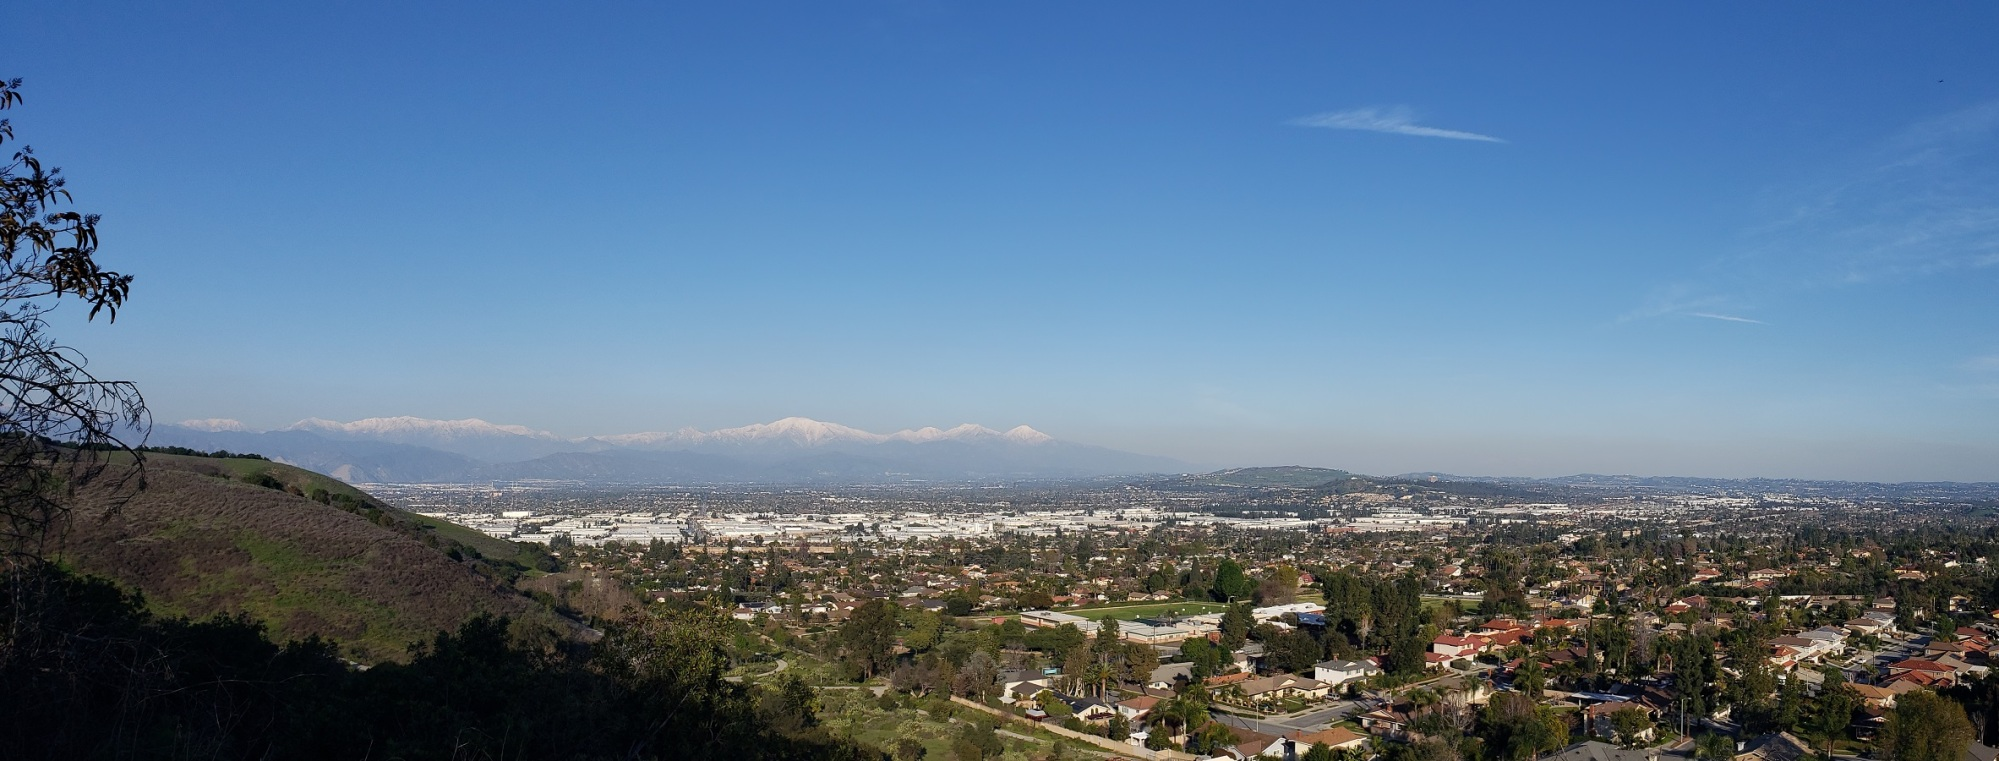 Mt. Baldy view from the Puente Hills, California